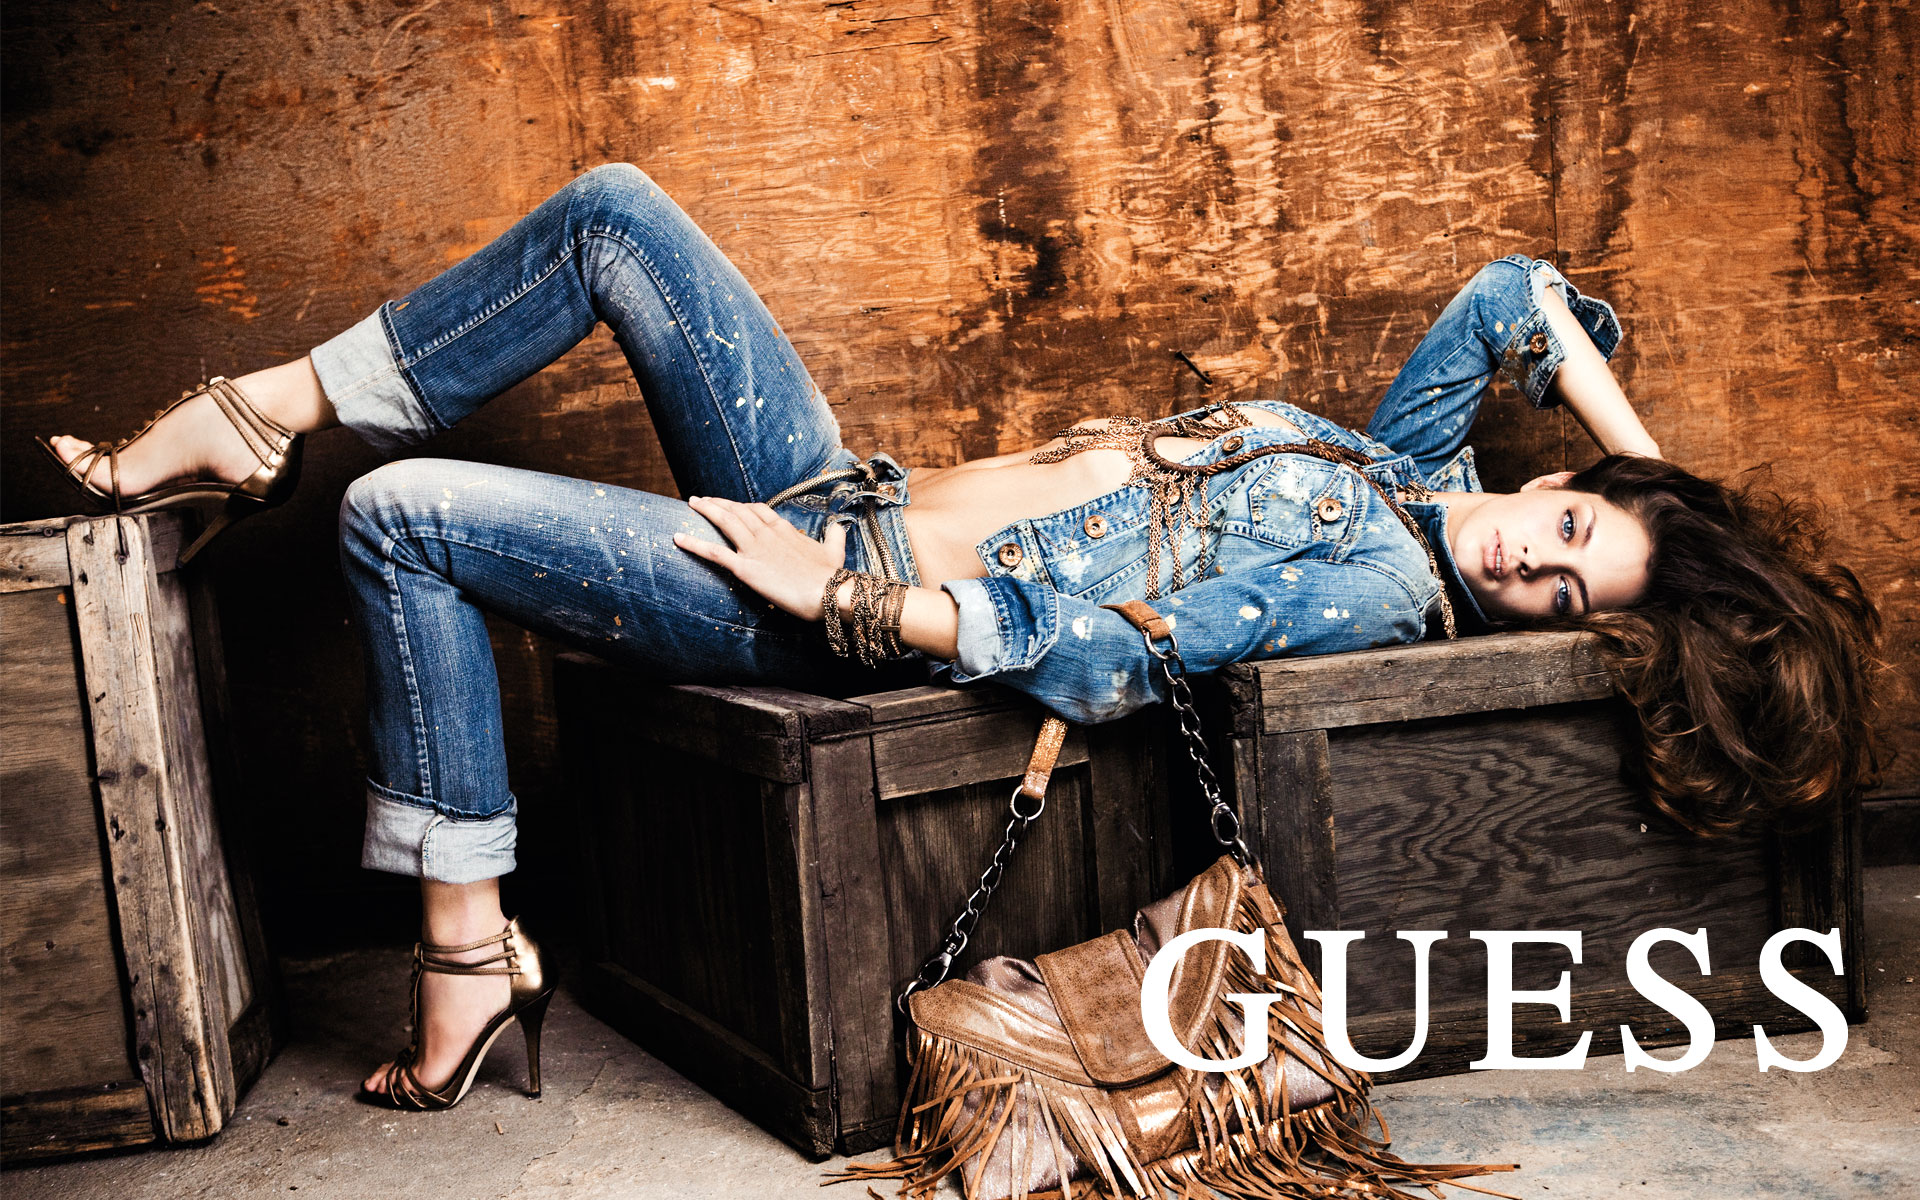 Guess Jeans Ad wallpaper - 249519 Guess Jeans Ad